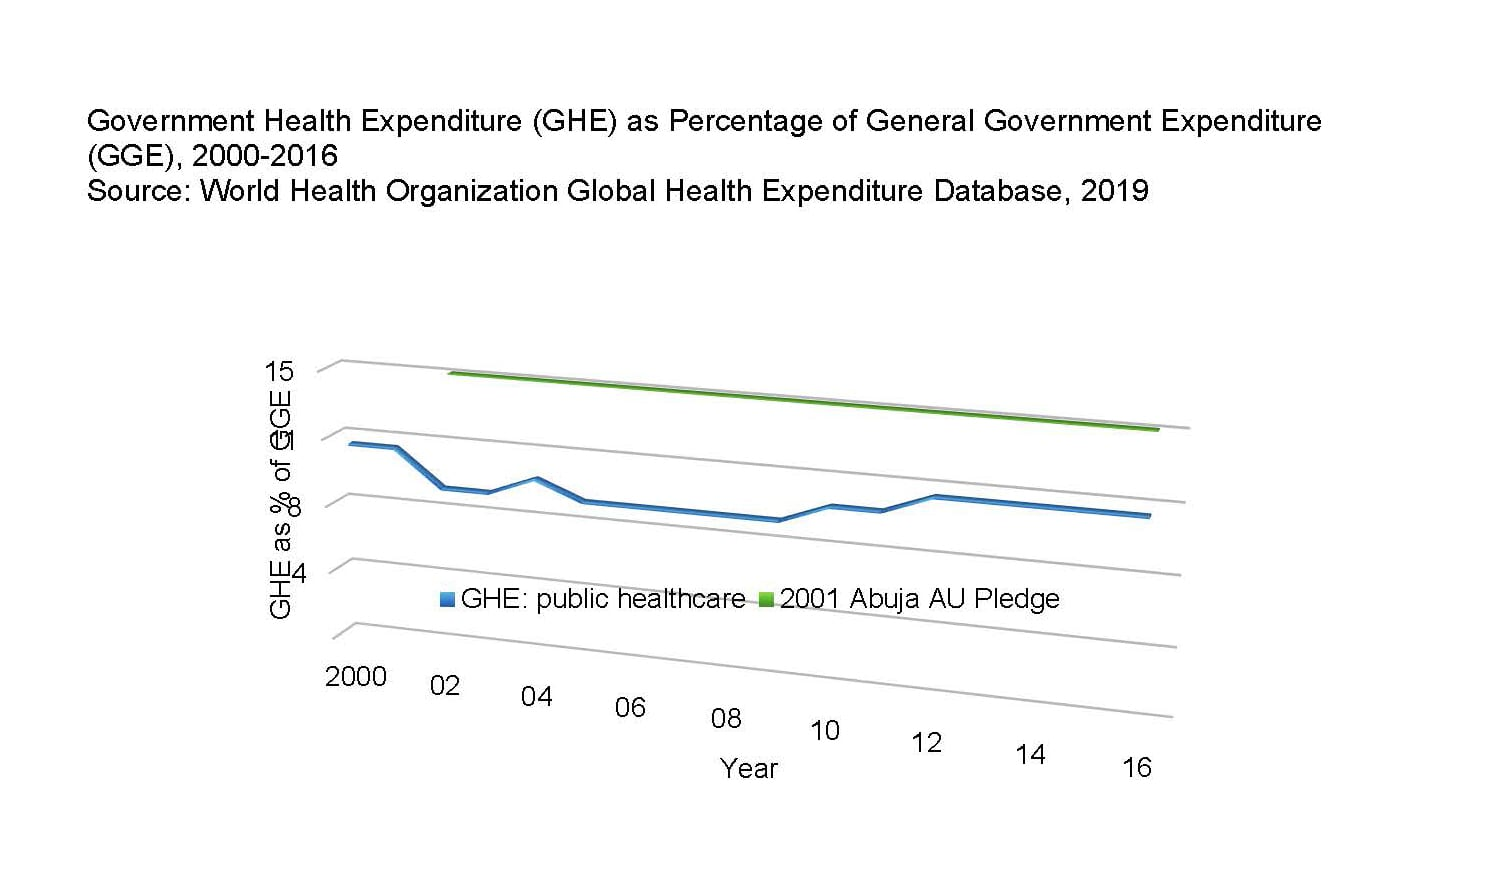 Government Health Expenditure (GHE) as Percentage of General Government Expenditure (GGE), 2000-2016